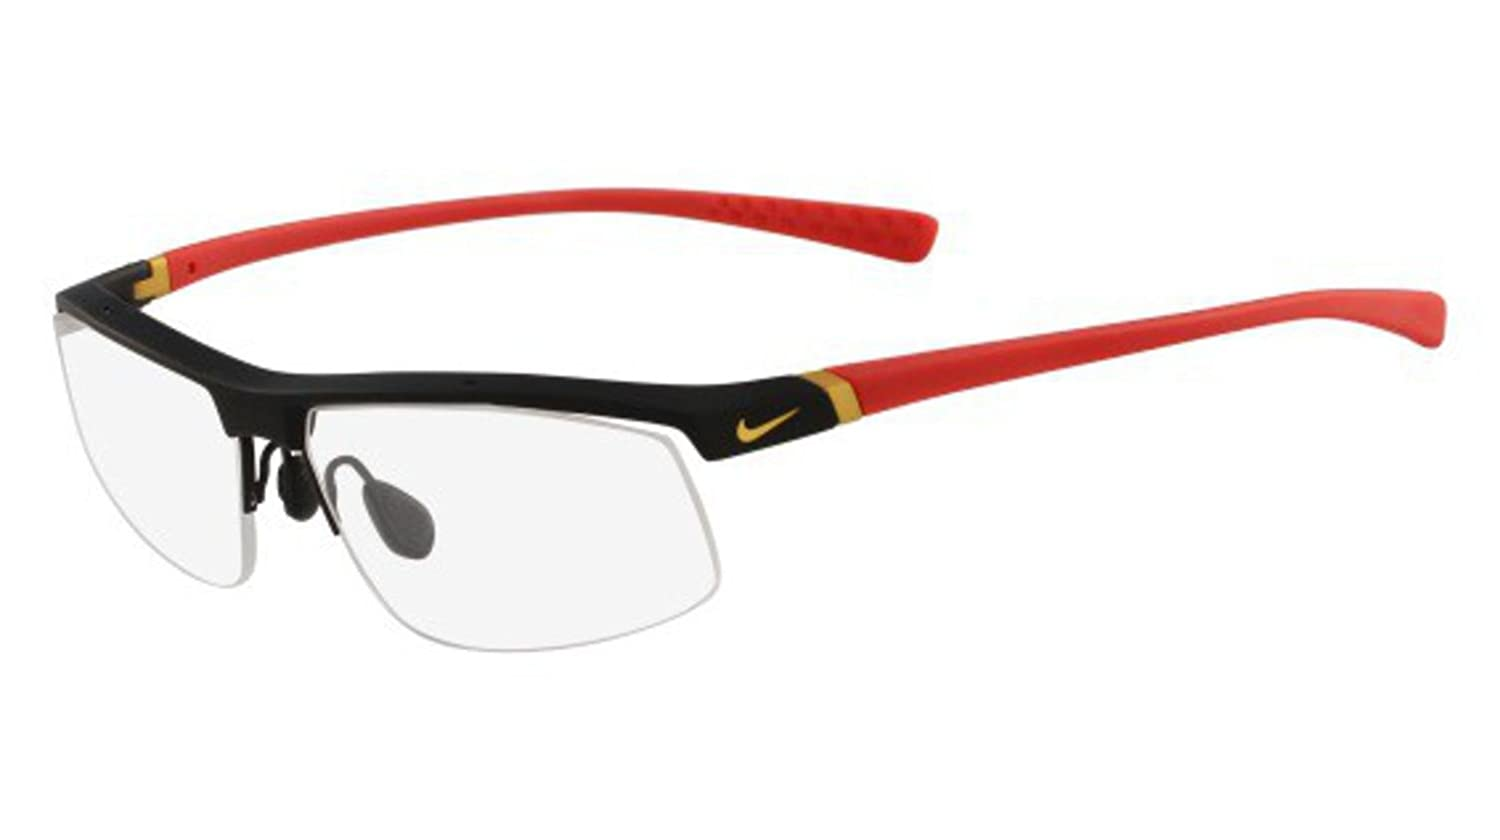 130d053b11 Eyeglasses NIKE 7071 3 016 MATTE BLACK CHALLENGE RED at Amazon Men s  Clothing store